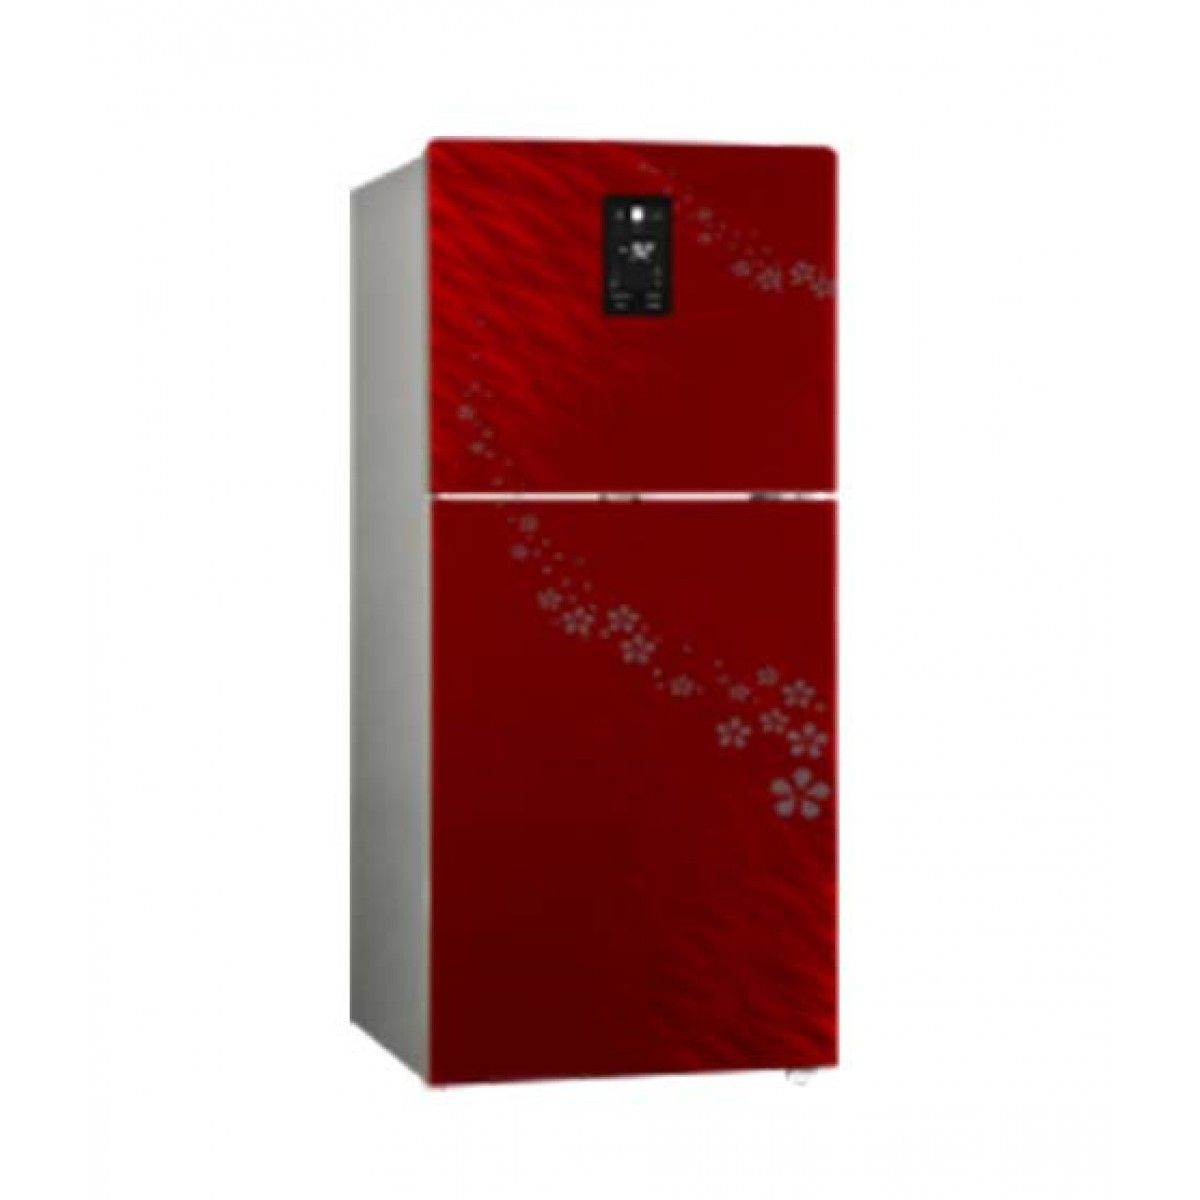 Changhong Ruba CHR-DD418GPR Double Door 15 cu ft Refrigerator